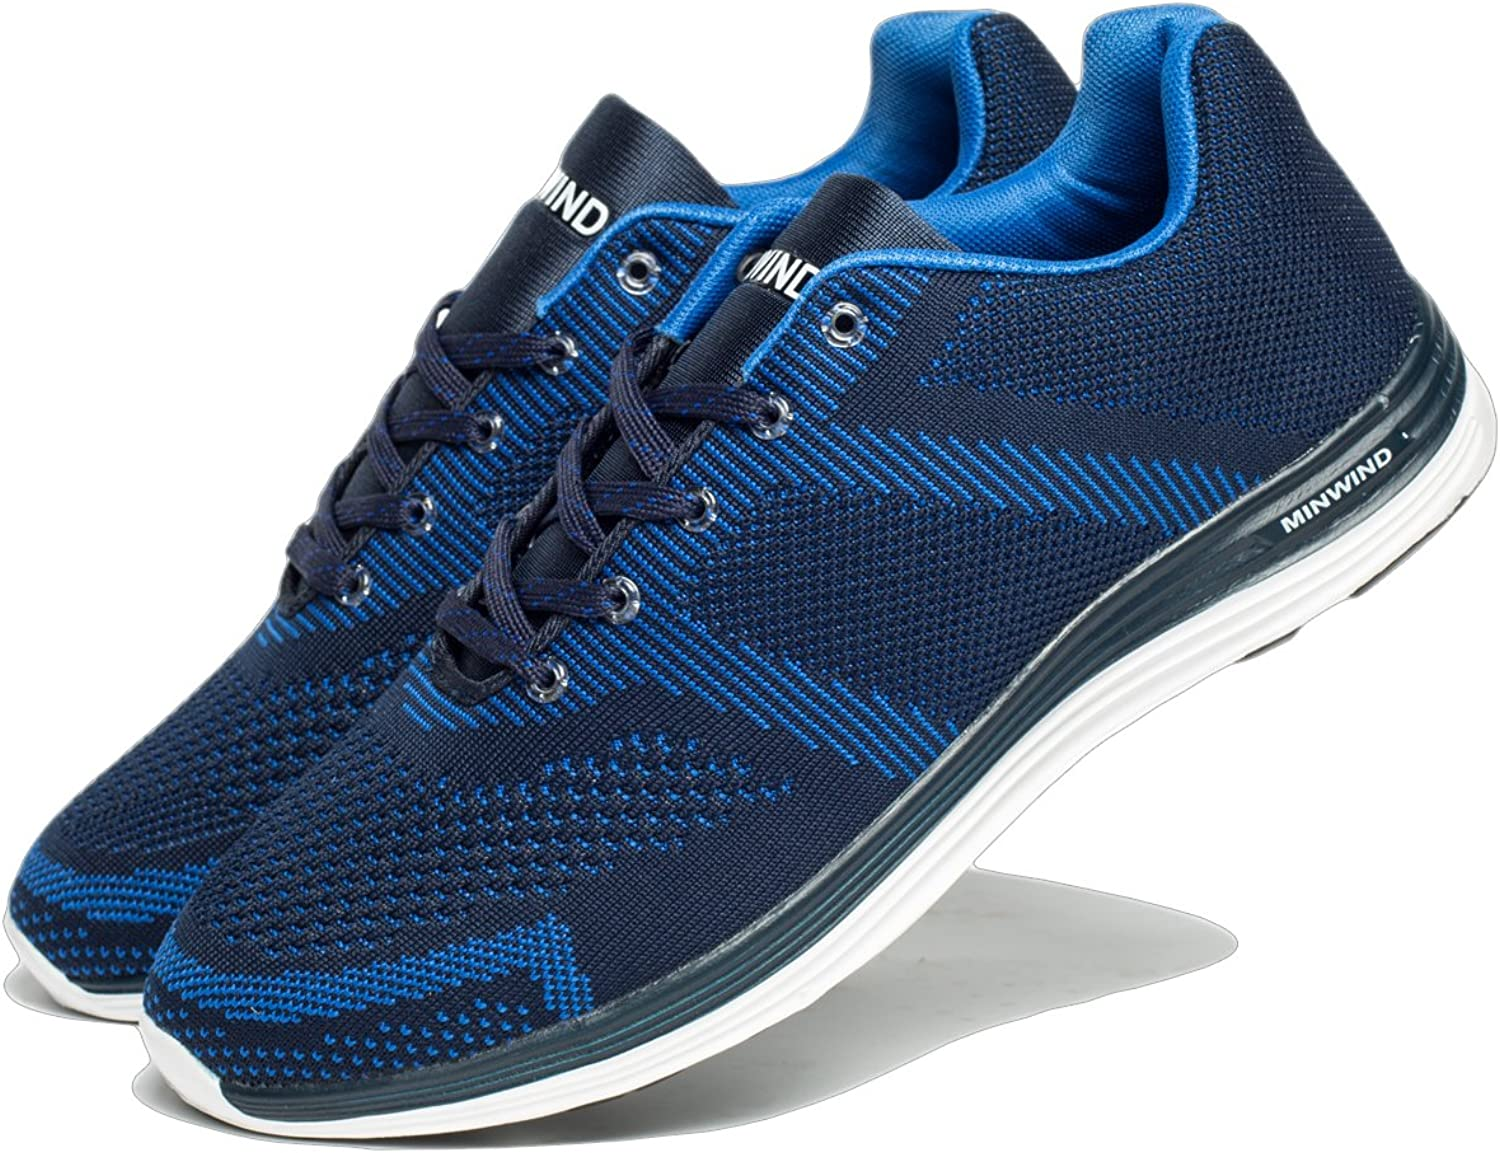 MINWIND Men's Lightweight Running shoes Knit Breathable Athletic shoes Outdoor Sneakers